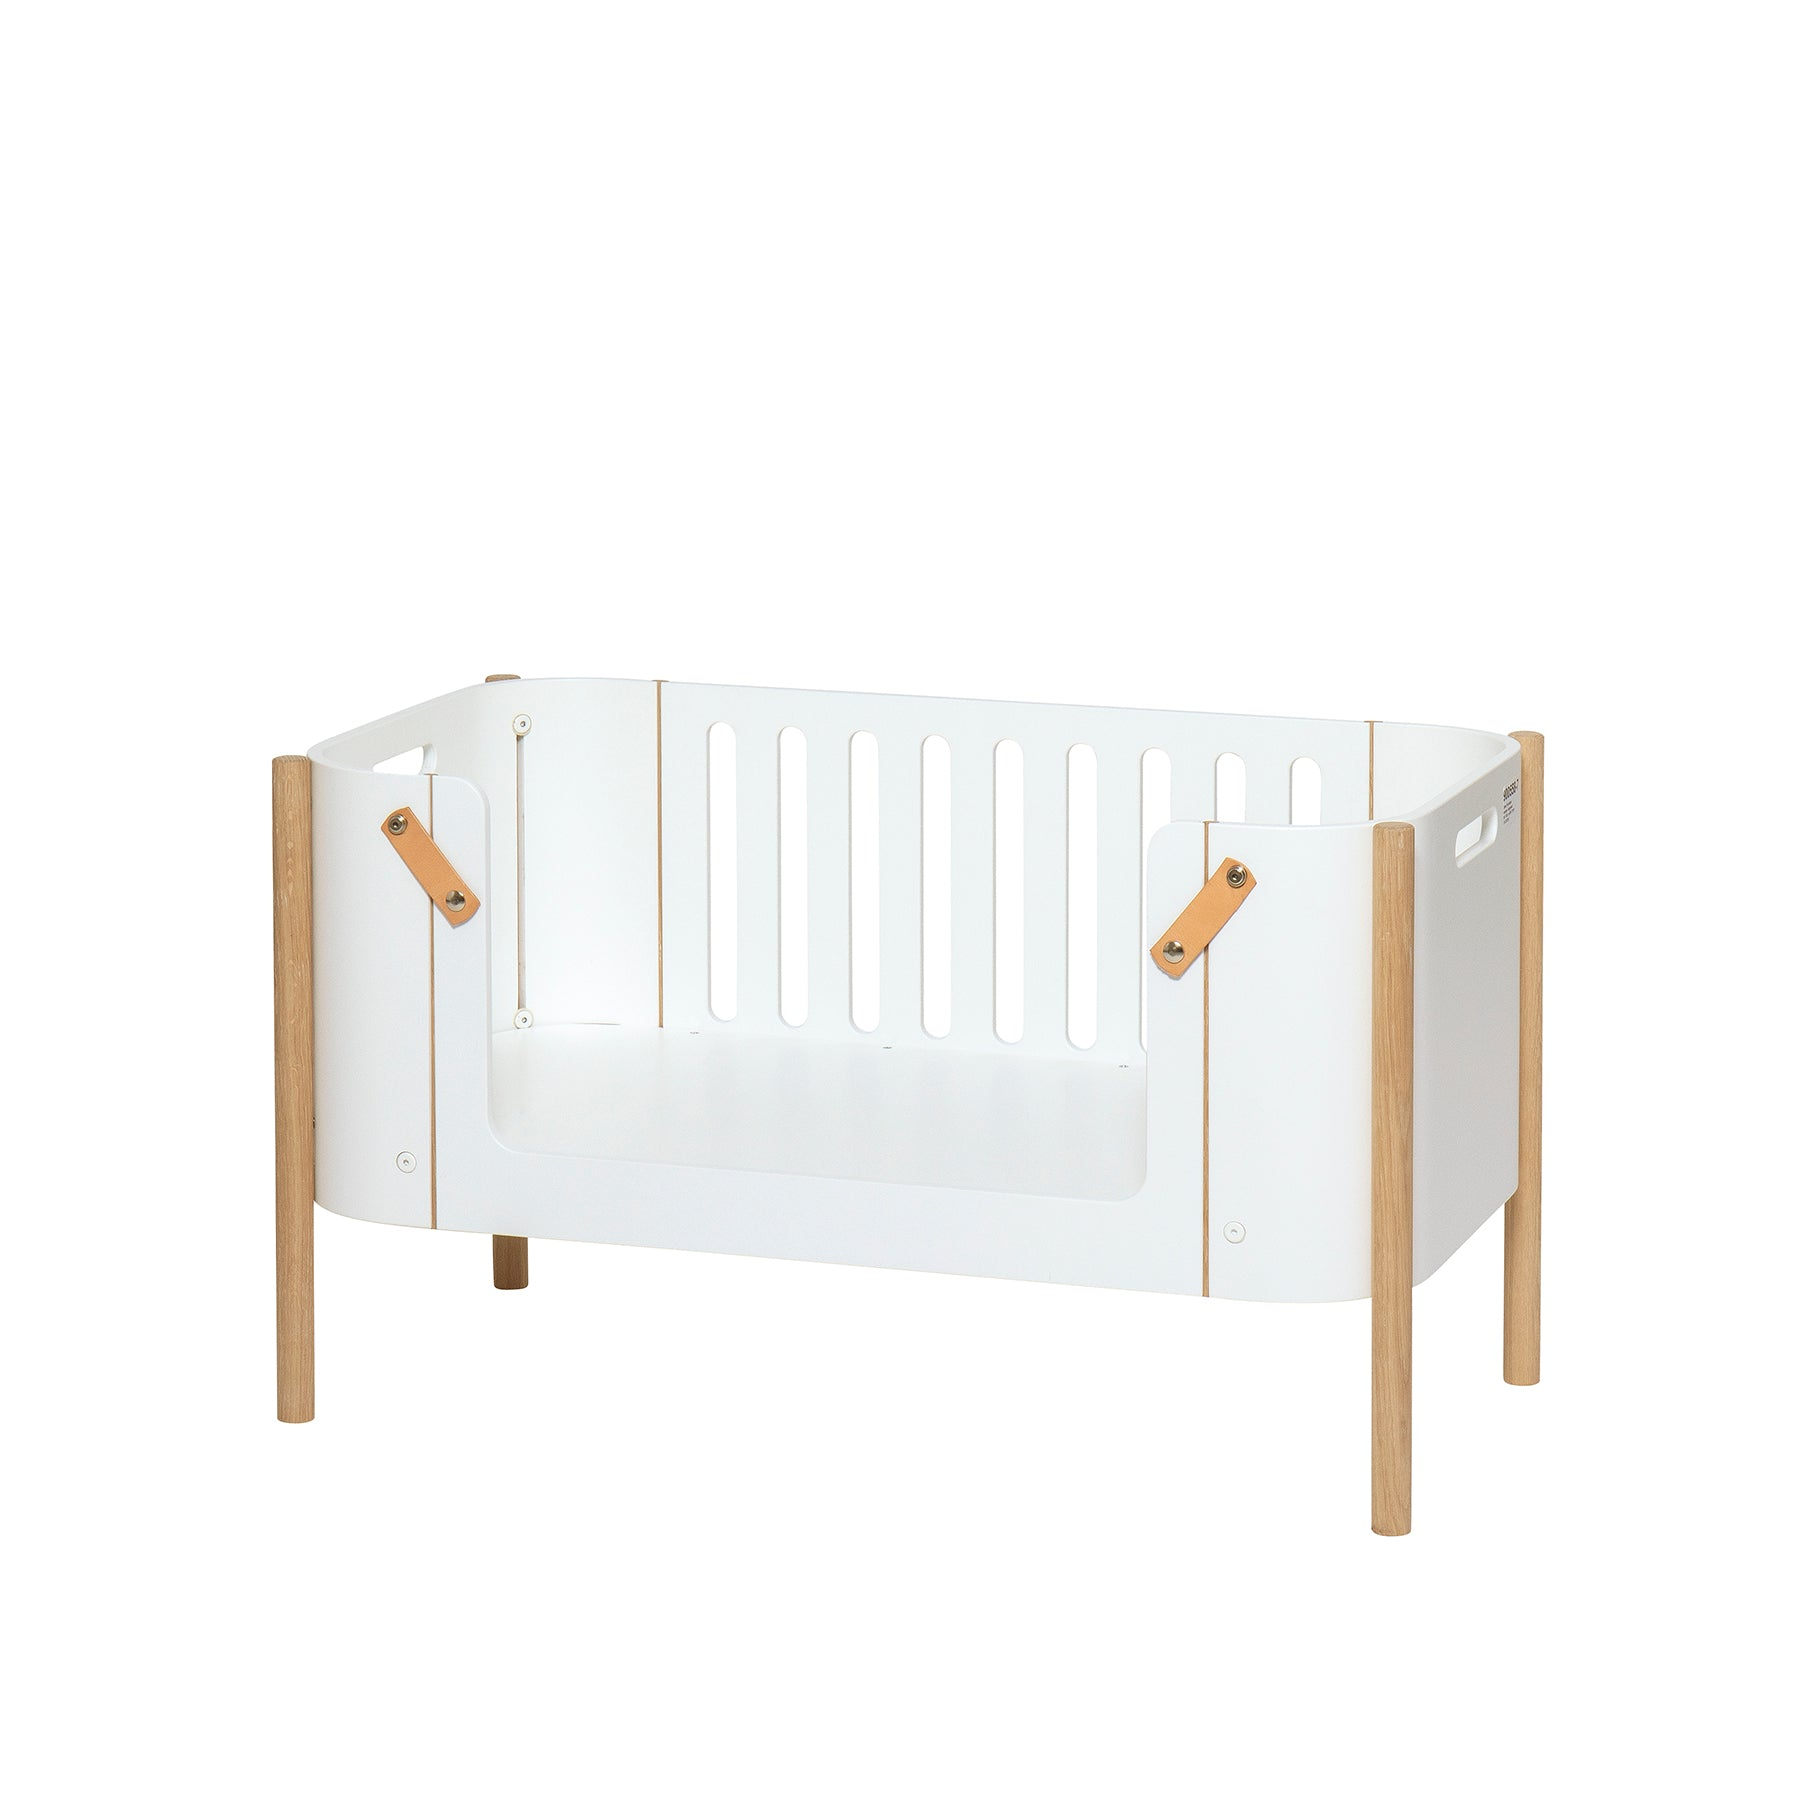 Oliver Furniture Wood kleine Bank